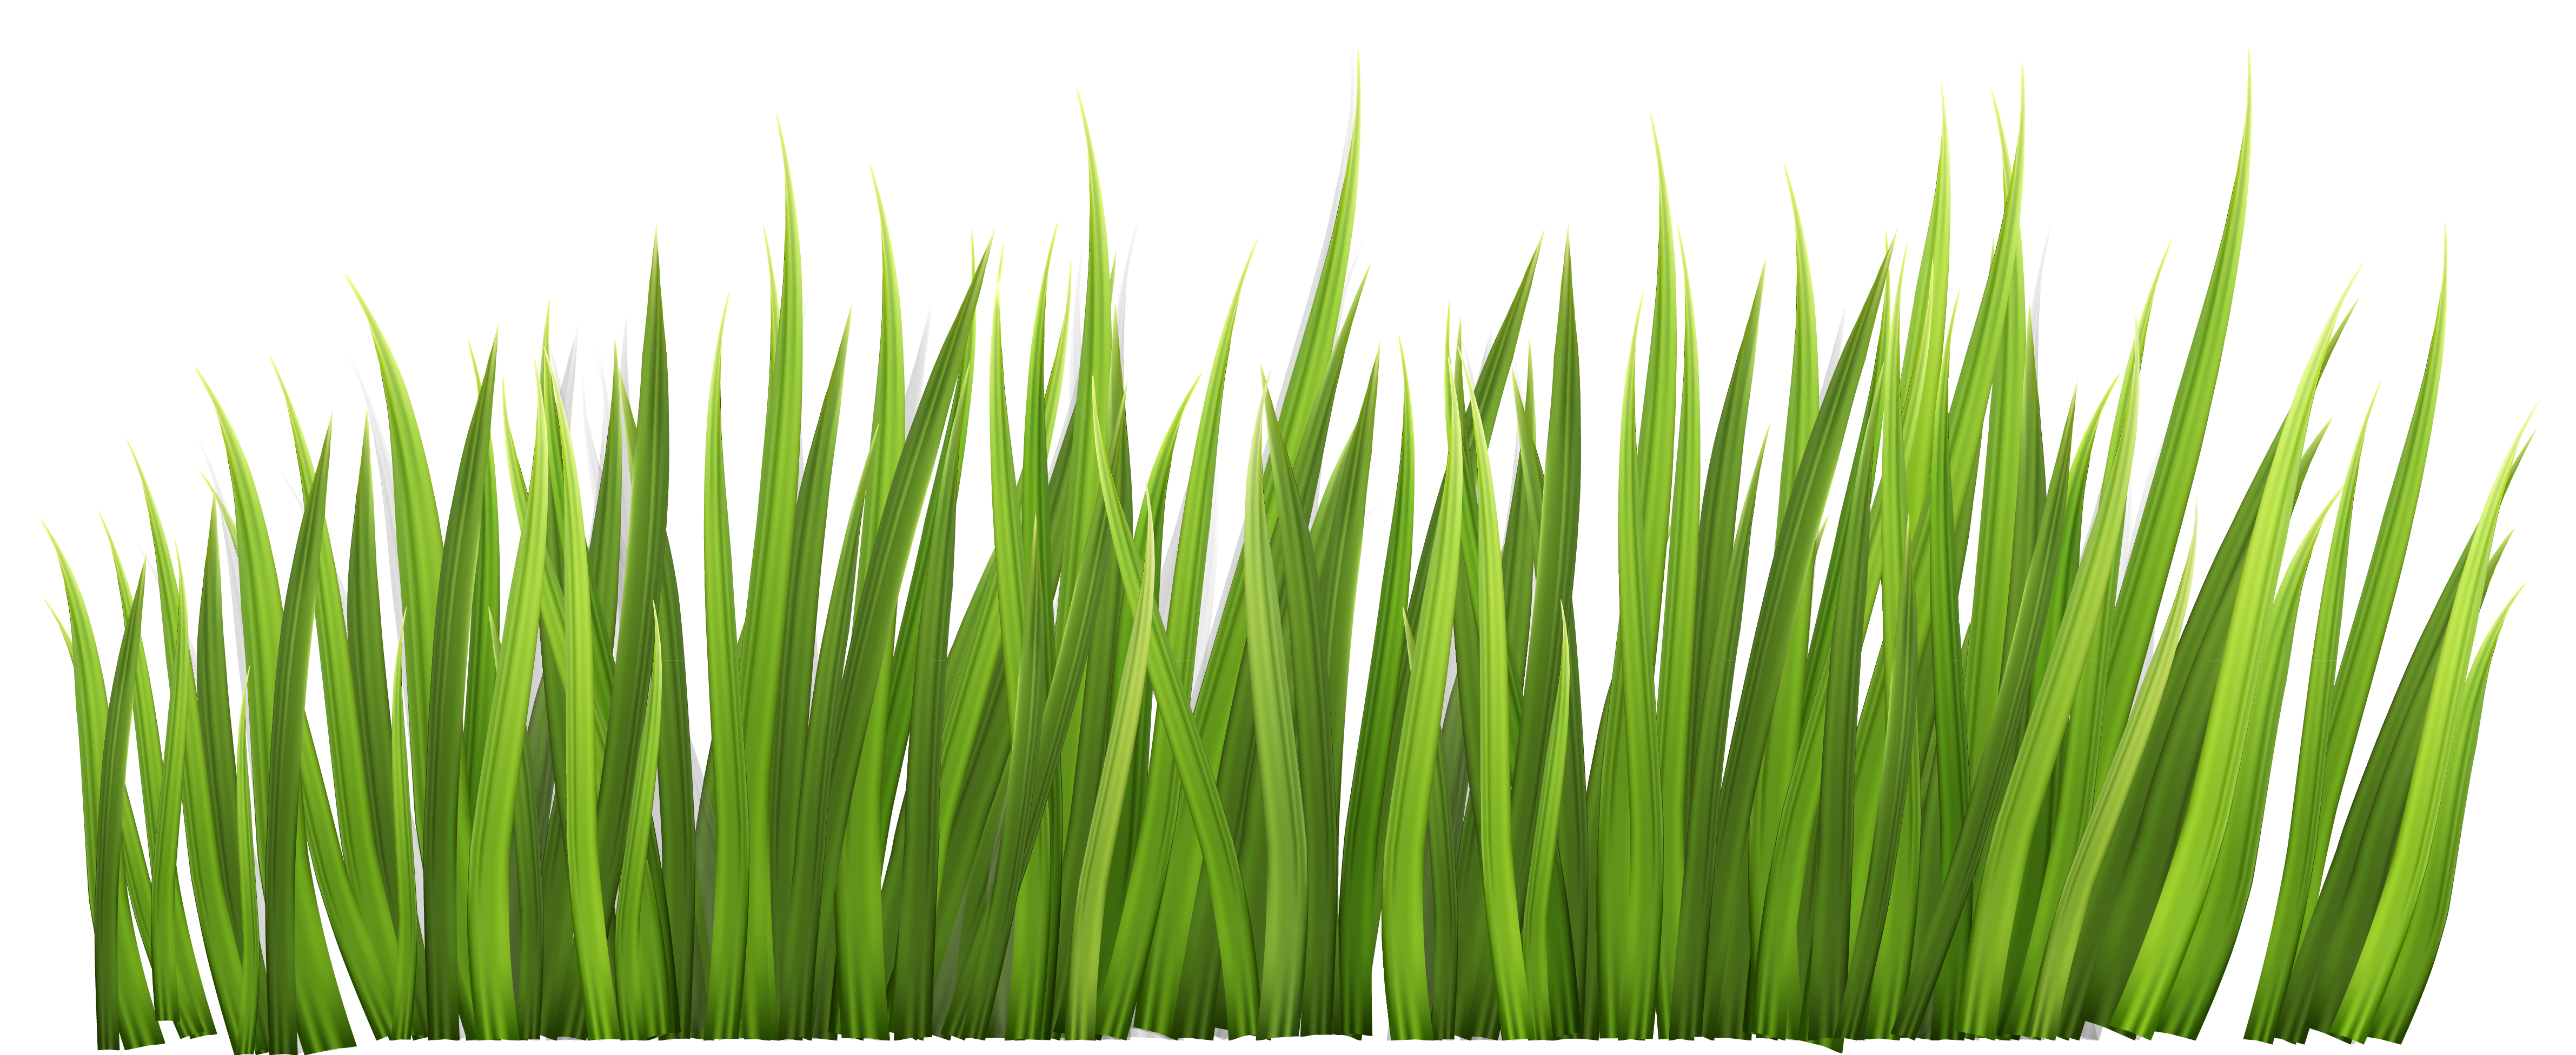 Grass clipart #14, Download drawings